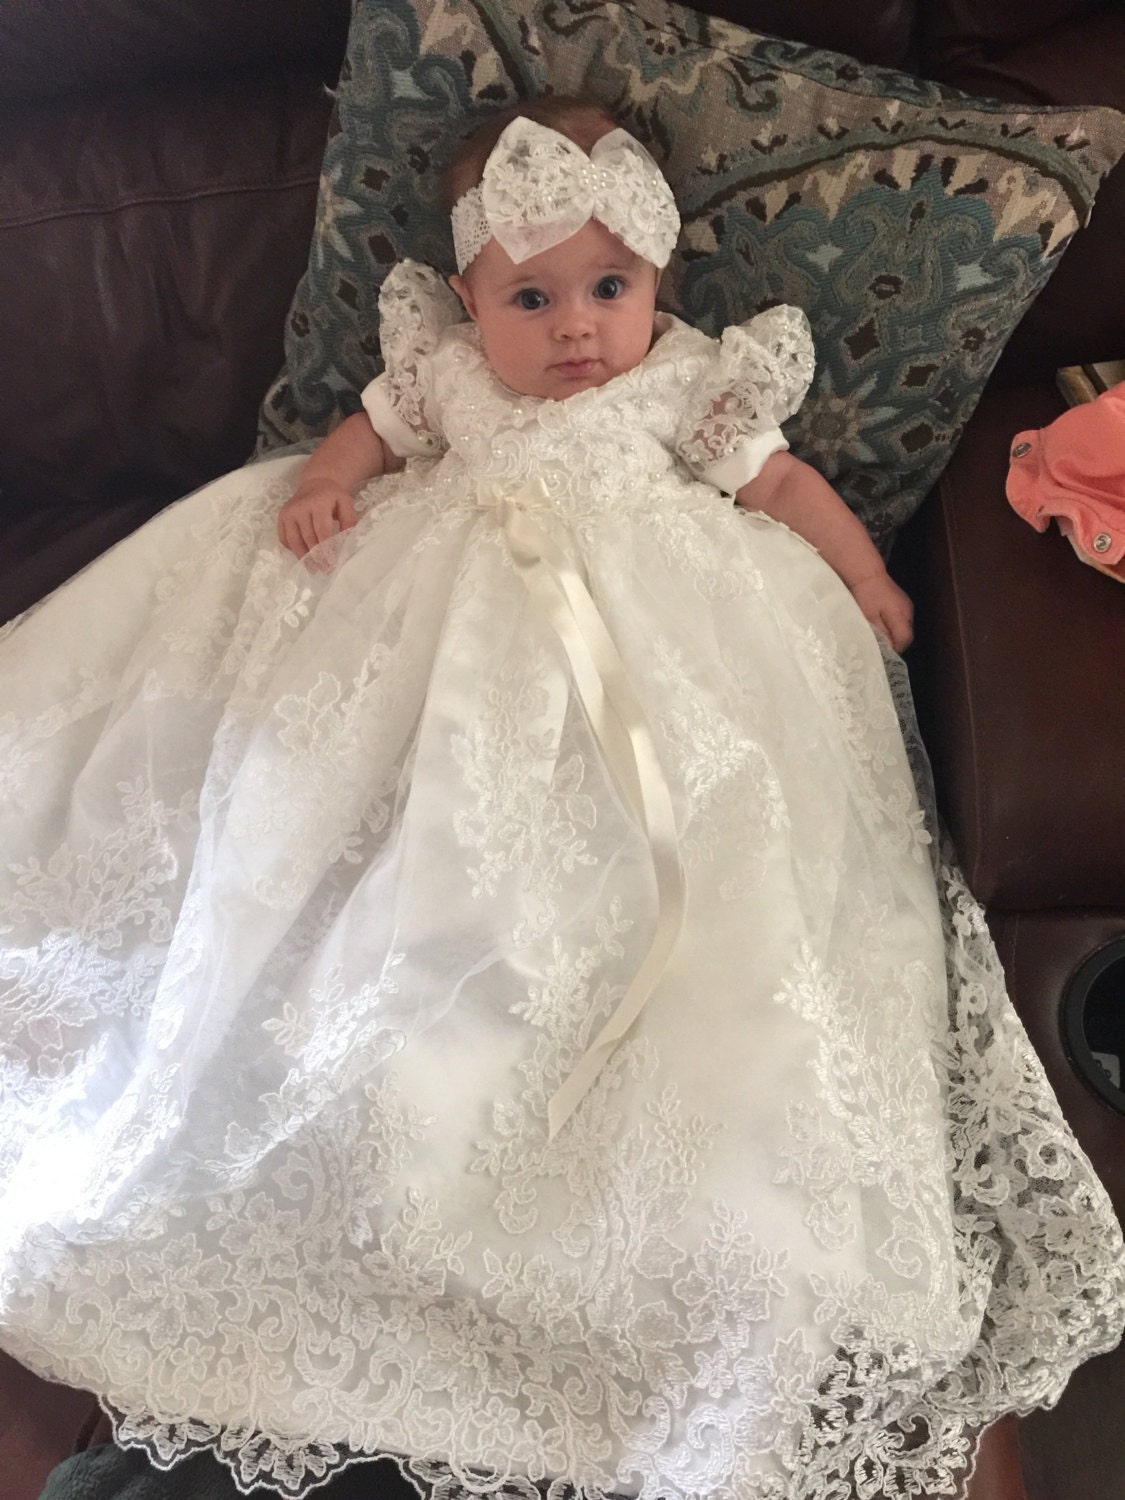 Beaded Alencon Lace Christening Gown Baptism Gown by Caremour